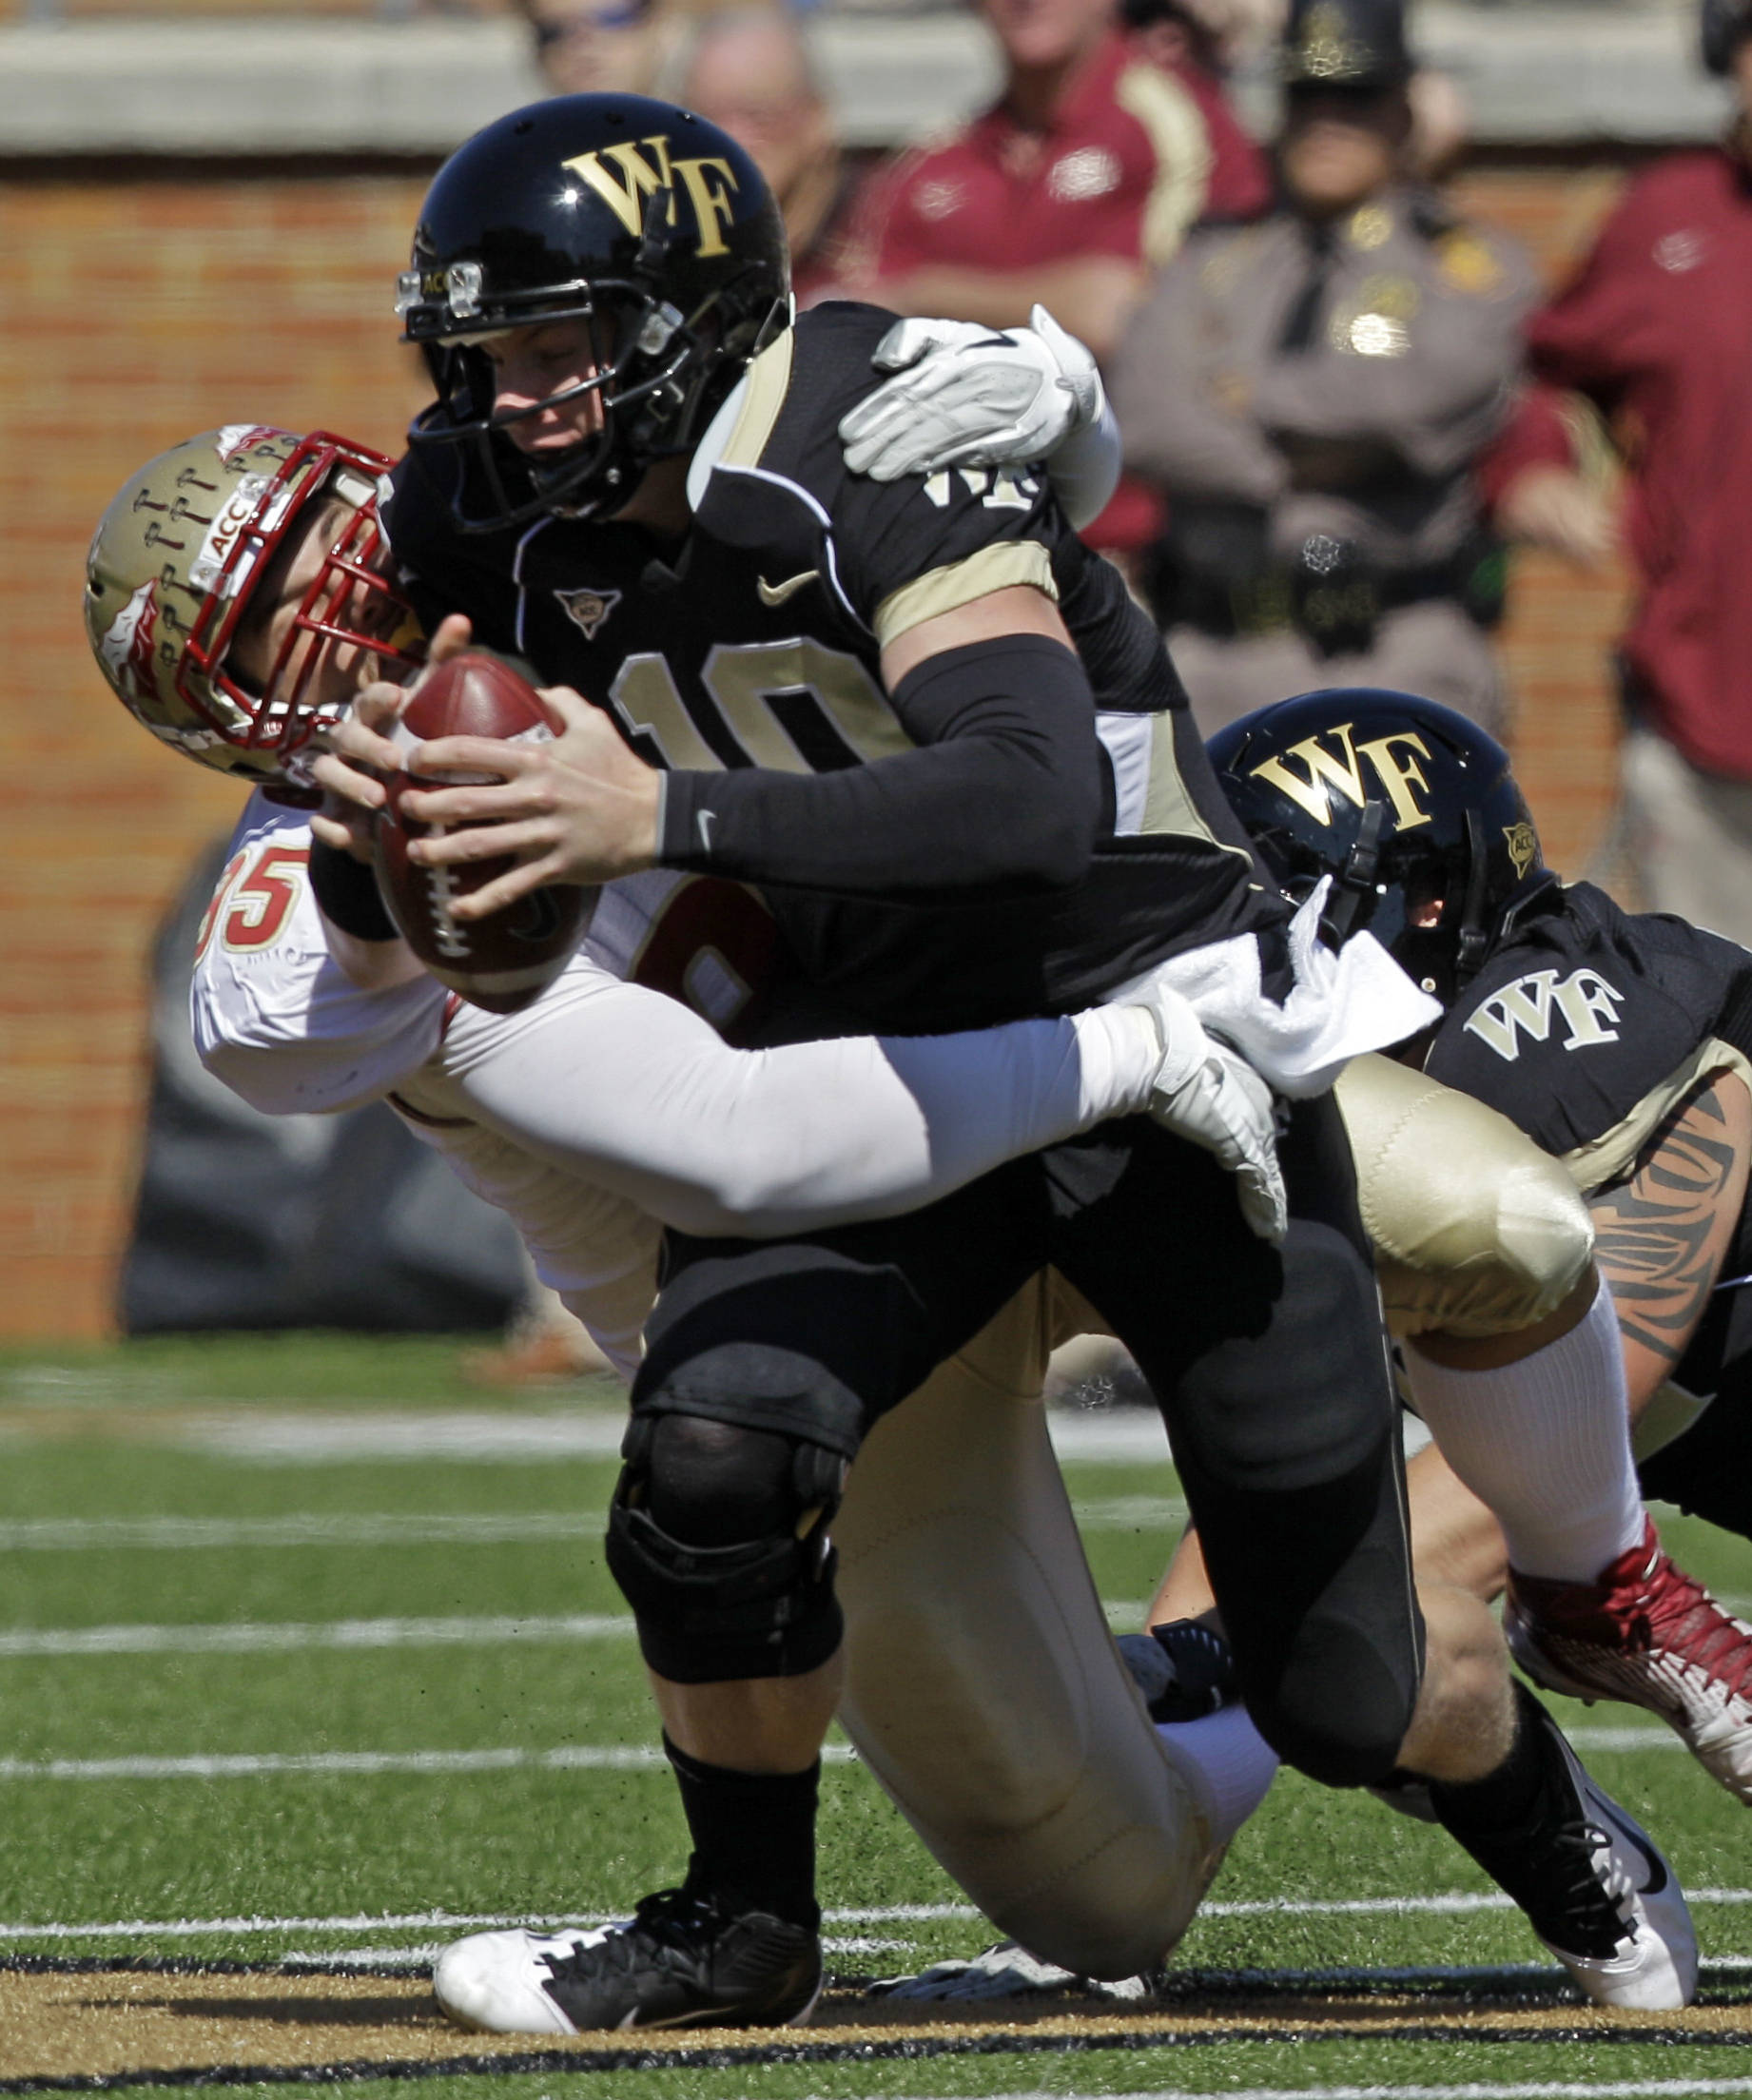 Wake Forest's Tanner Price (10) is sacked by Florida State's Bjoern Werner (95) during the first half of a NCAA college football game in Winston-Salem, N.C., Saturday, Oct. 8, 2011. (AP Photo/Chuck Burton)